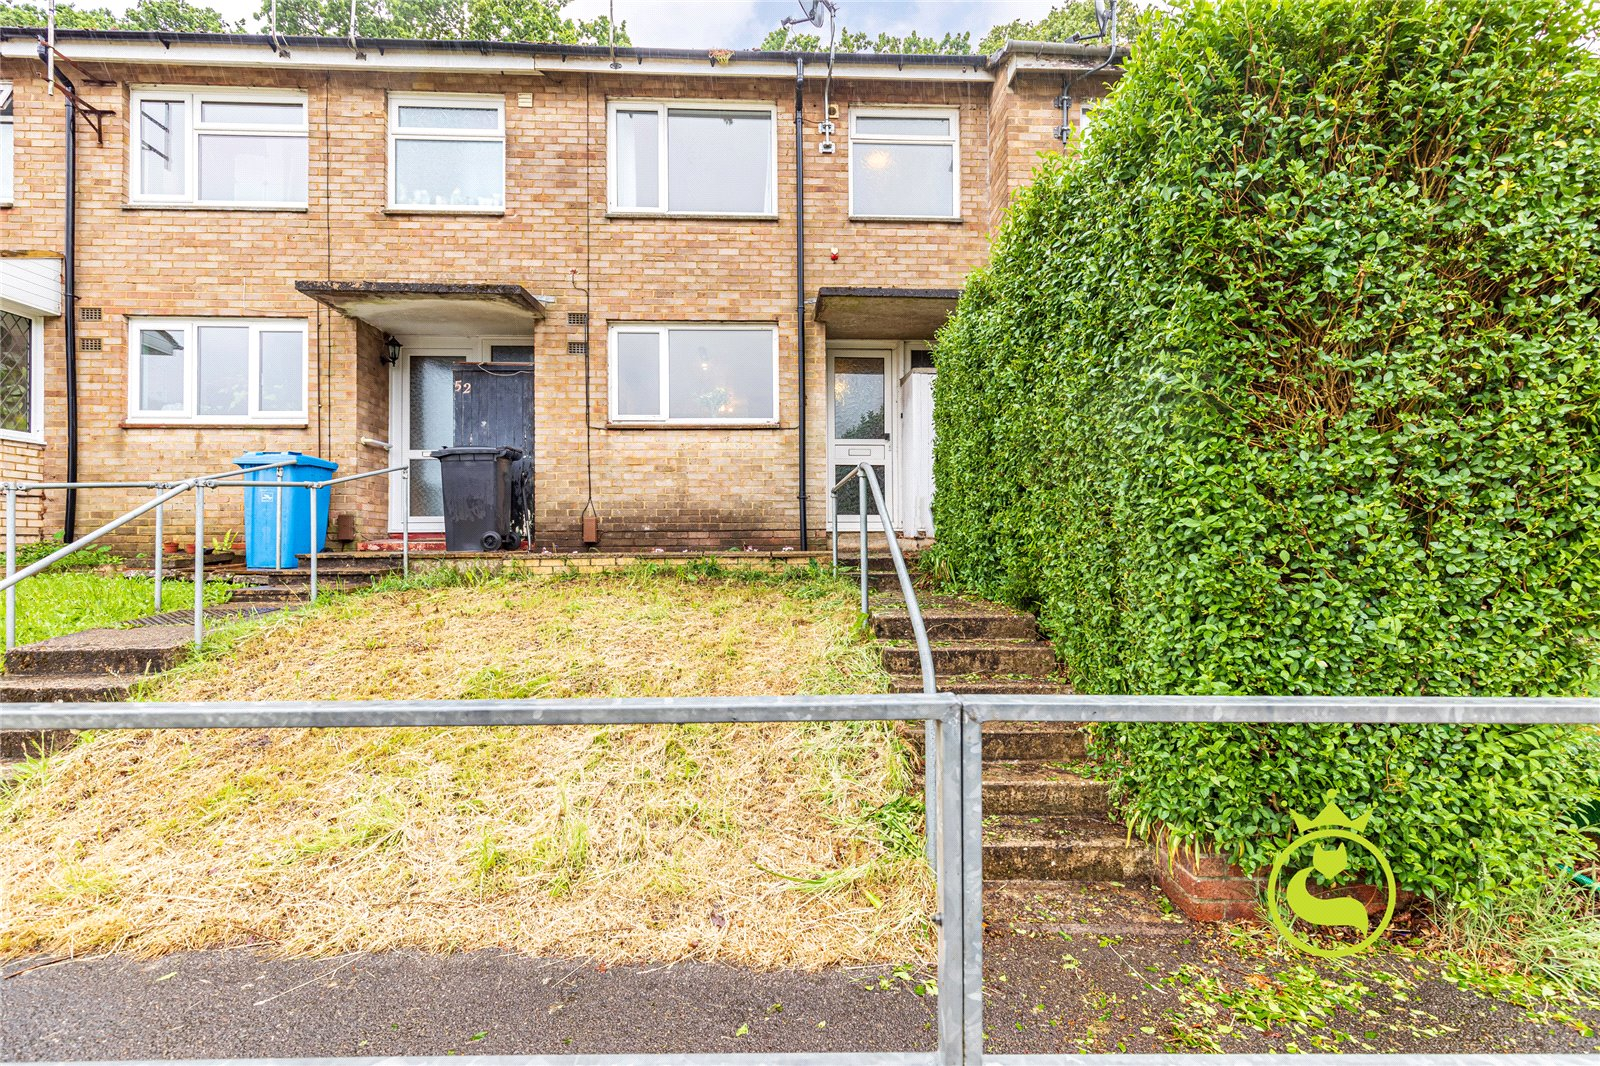 3 bed house for sale in Northmere Drive, Upper Parkstone, BH12